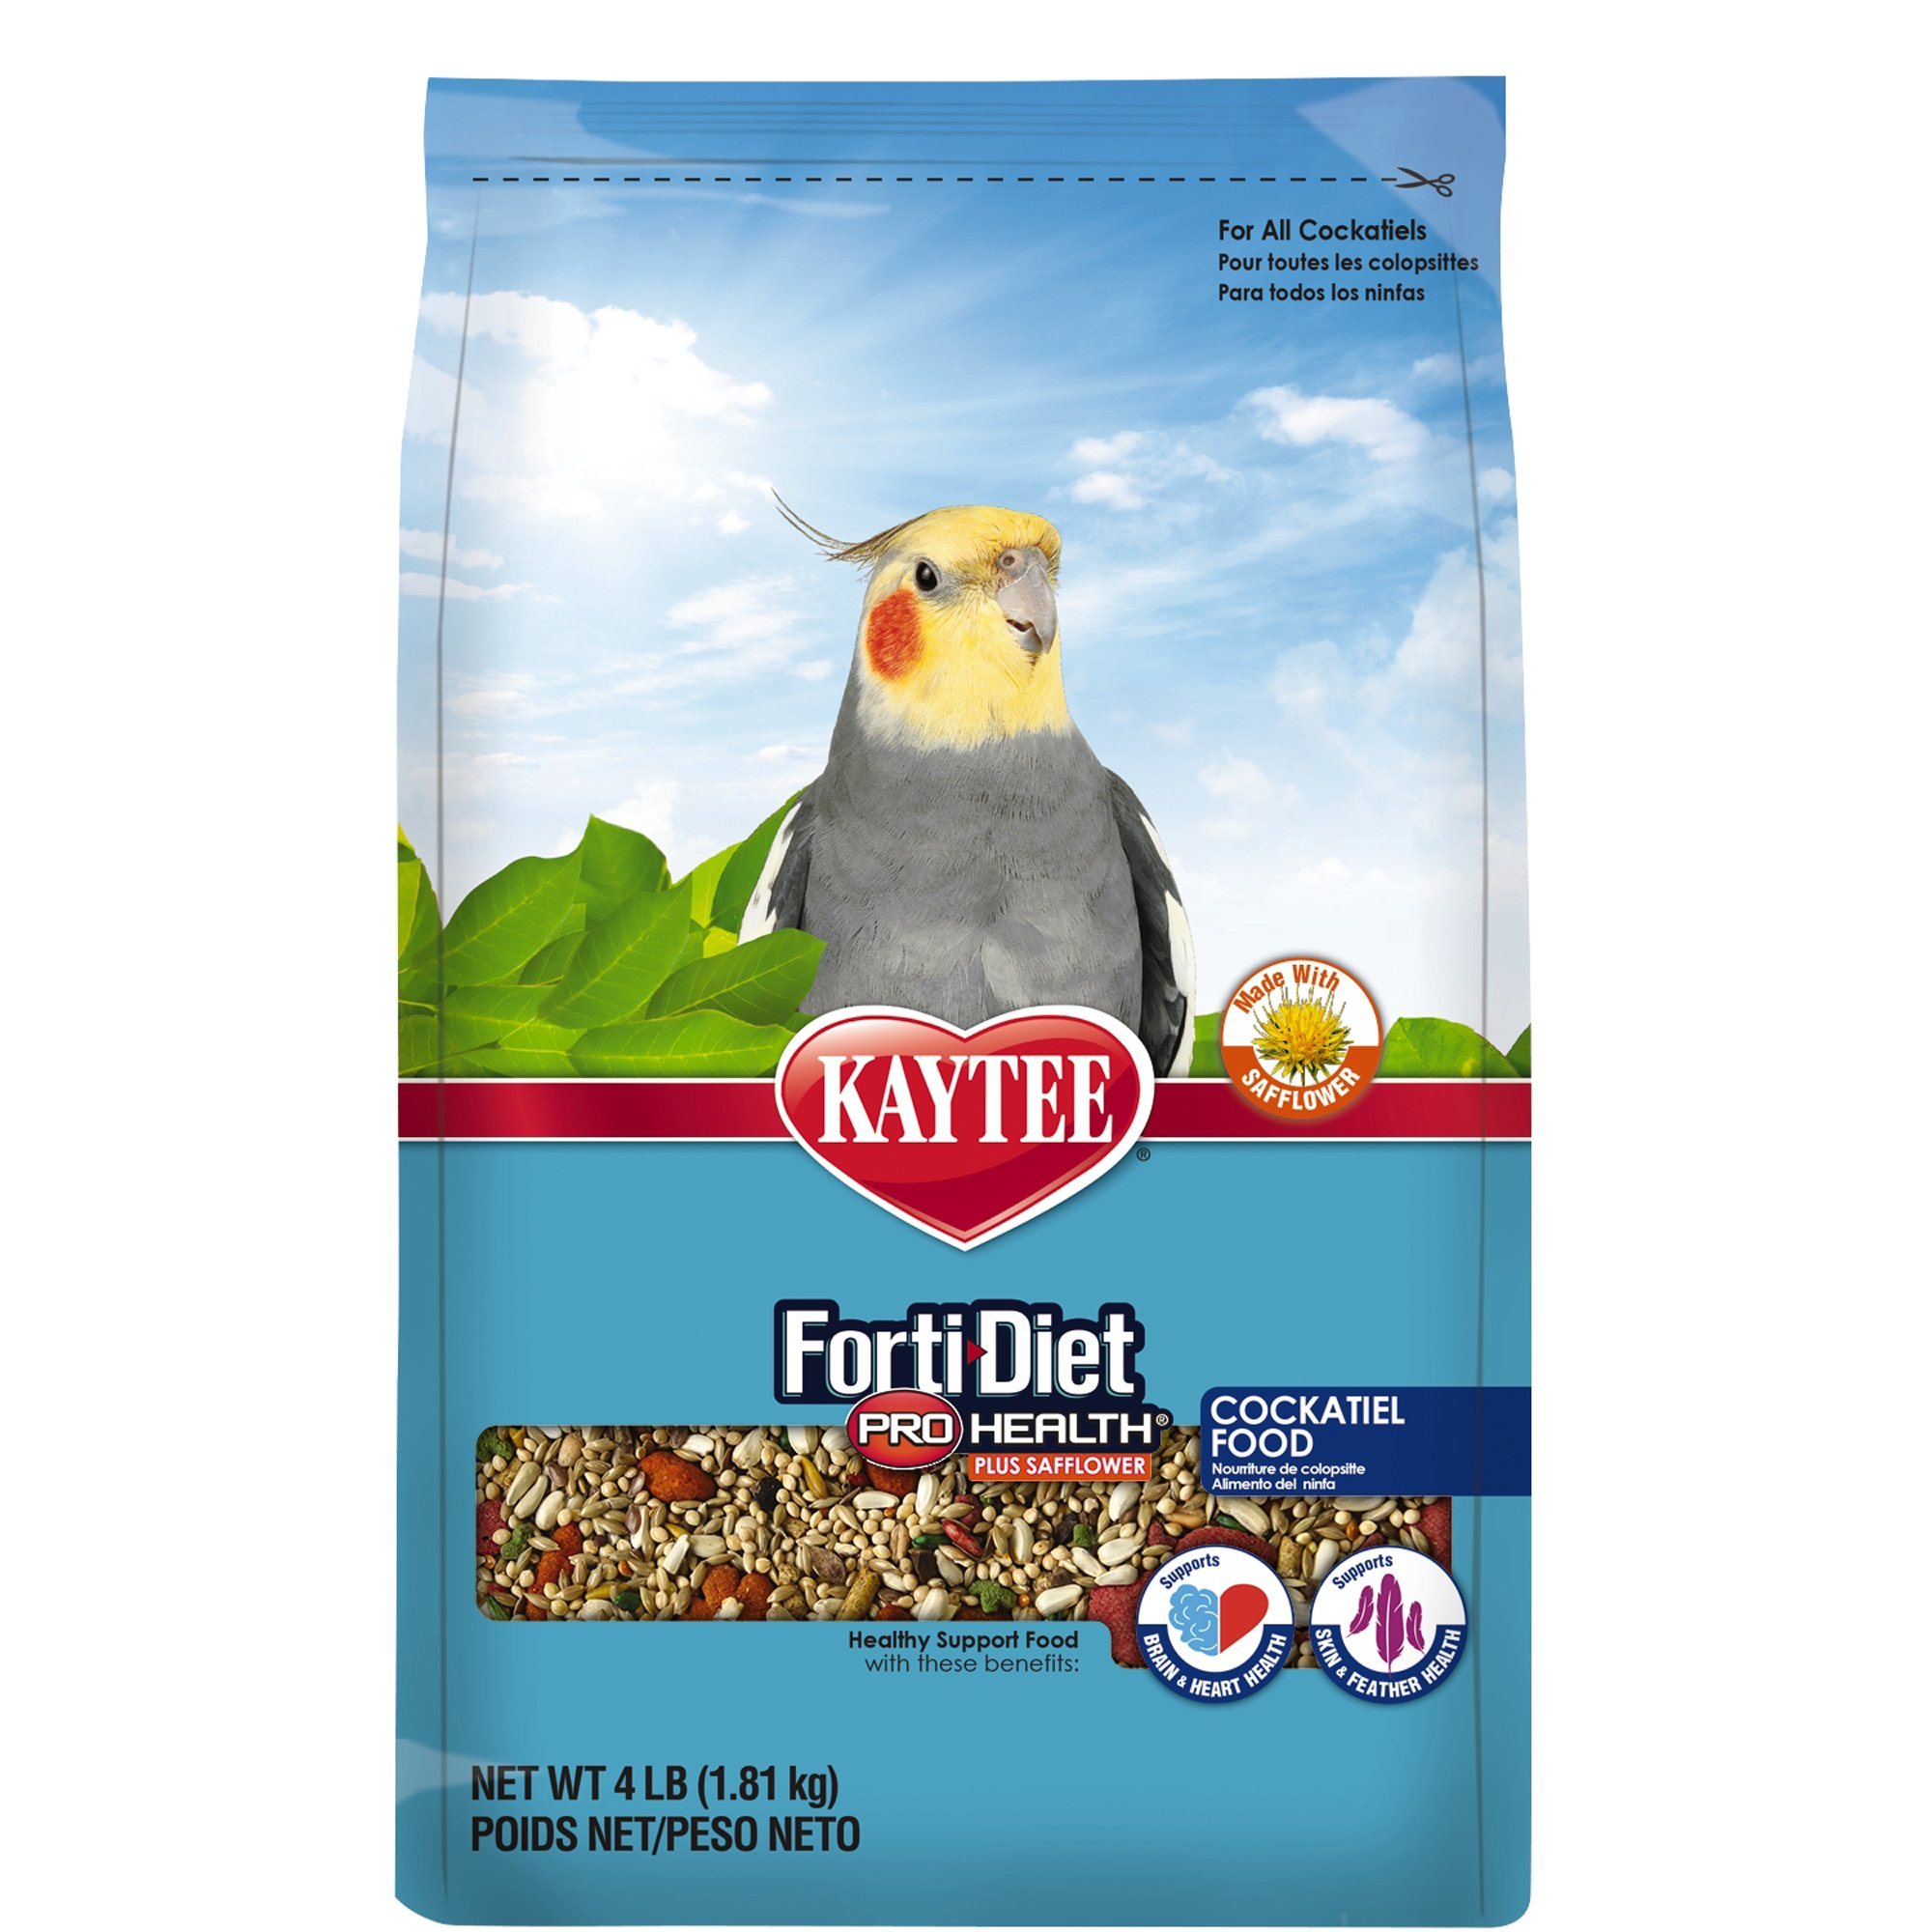 petco vs healthyfoodforpets Petco vs healthy food for pets petco and healthy food for pets are both marketed towards pet owners petco sells food for pets and anything else a pet would need while healthy food for pets website focuses specifically on healthy pet food.